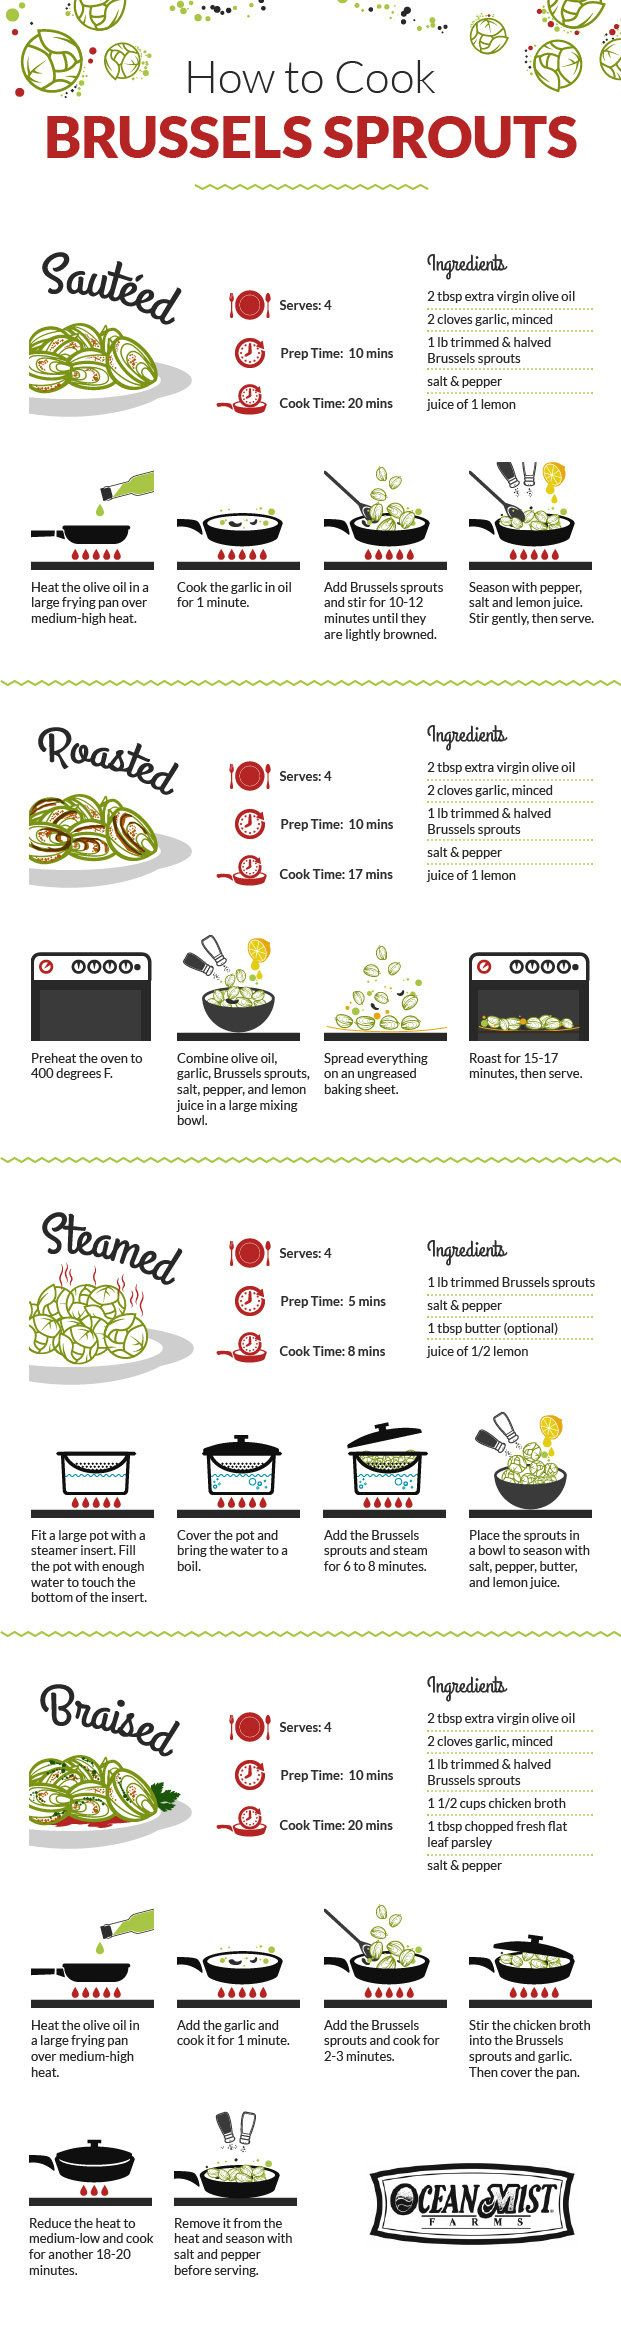 For making Brussels sprouts that taste legit heavenly. | 25 Cheat Sheets That Make Cooking Healthier Less Of A Freaking Chore